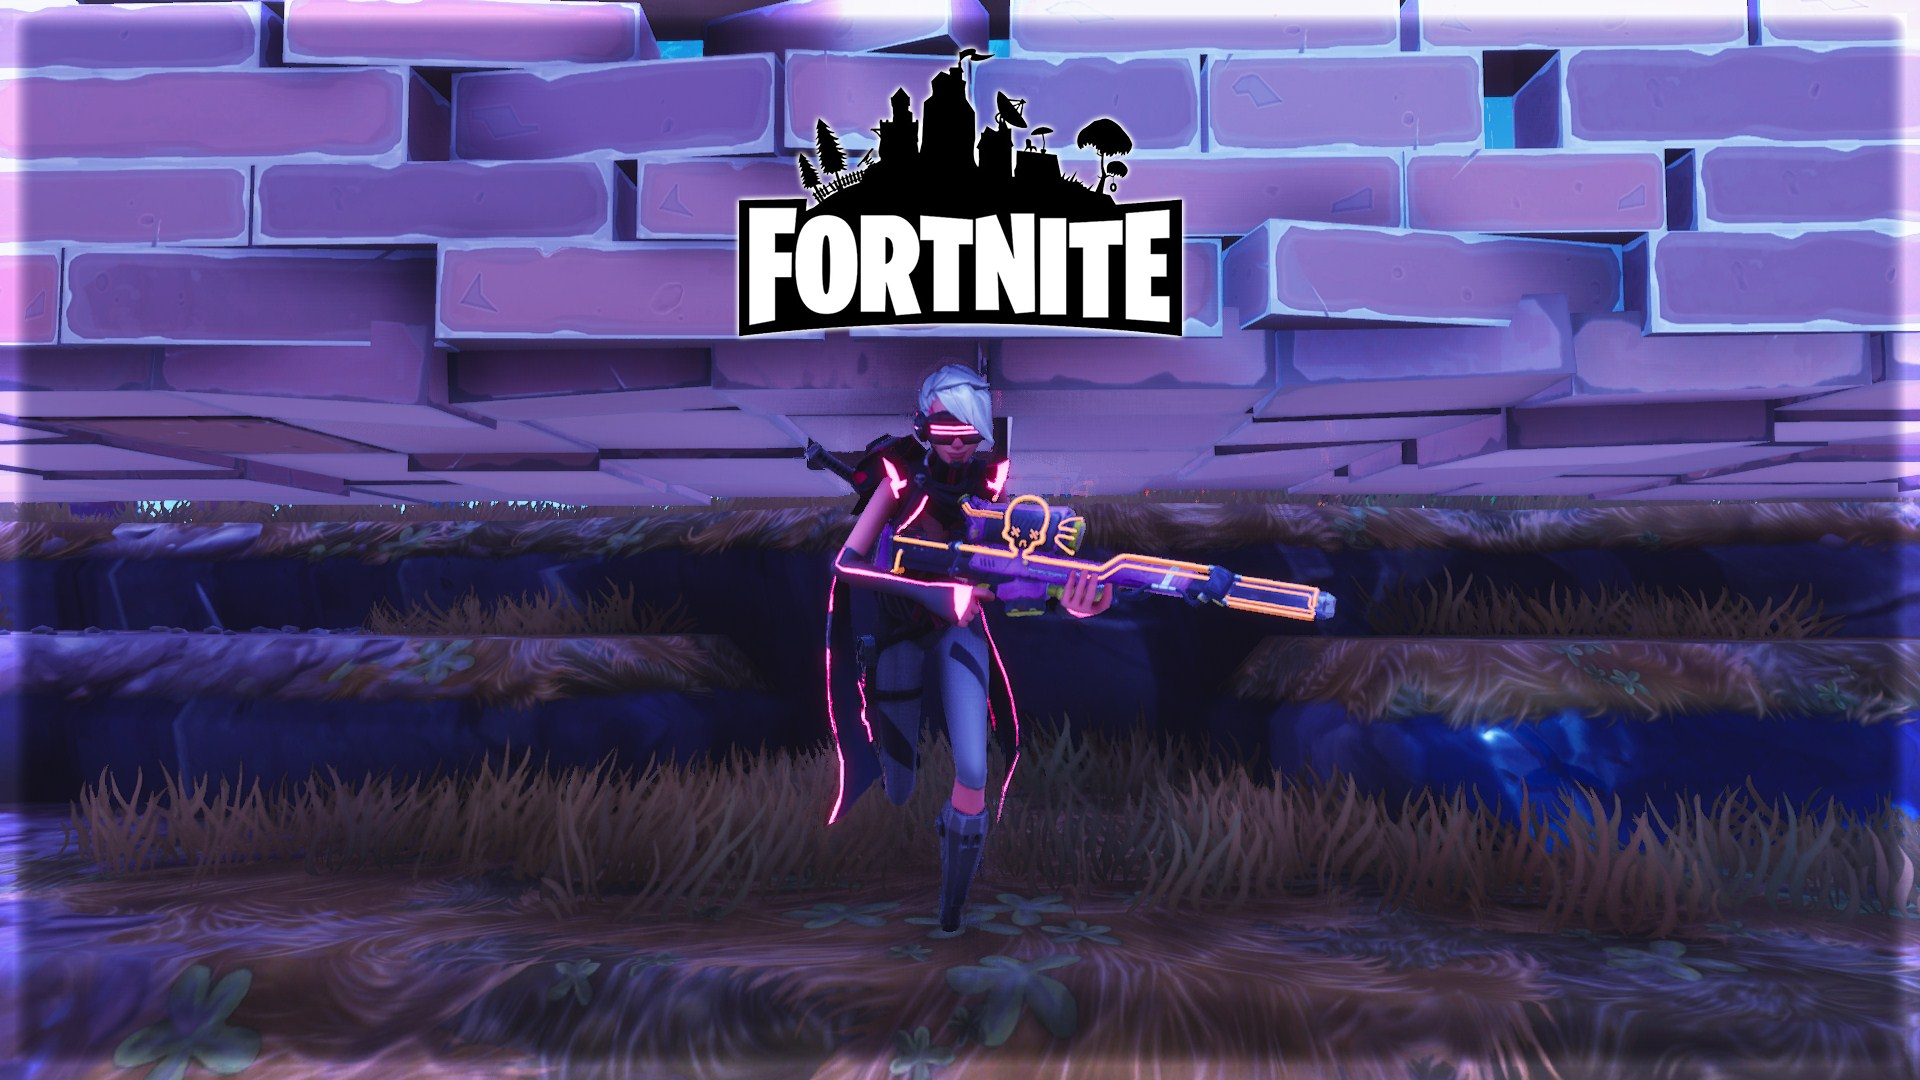 related posts fortnite update 1 85 patch notes - fortnite ps4 patch notes